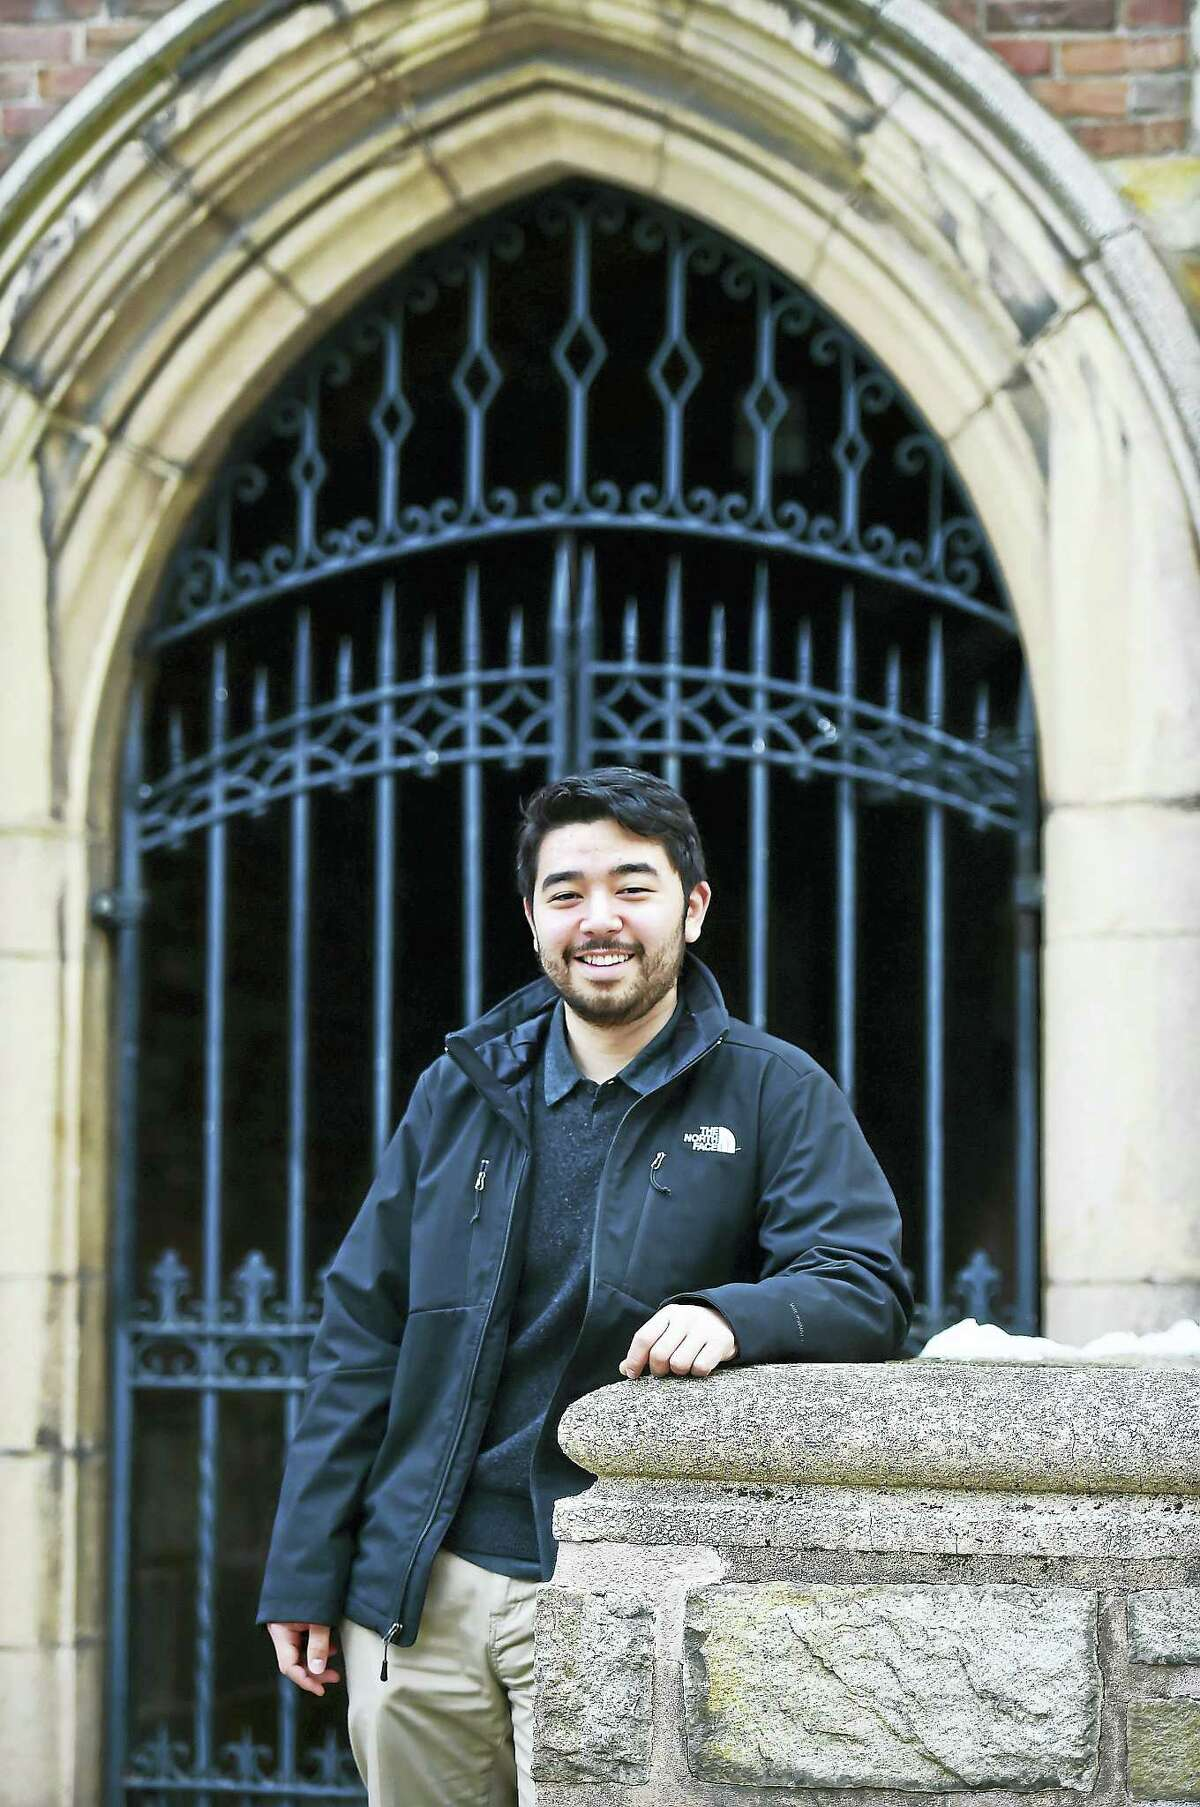 Robert Henderson photographed on York Street in New Haven, Tuesday, January 26, 2016, attends Yale University through the Warrior-Scholar Project.